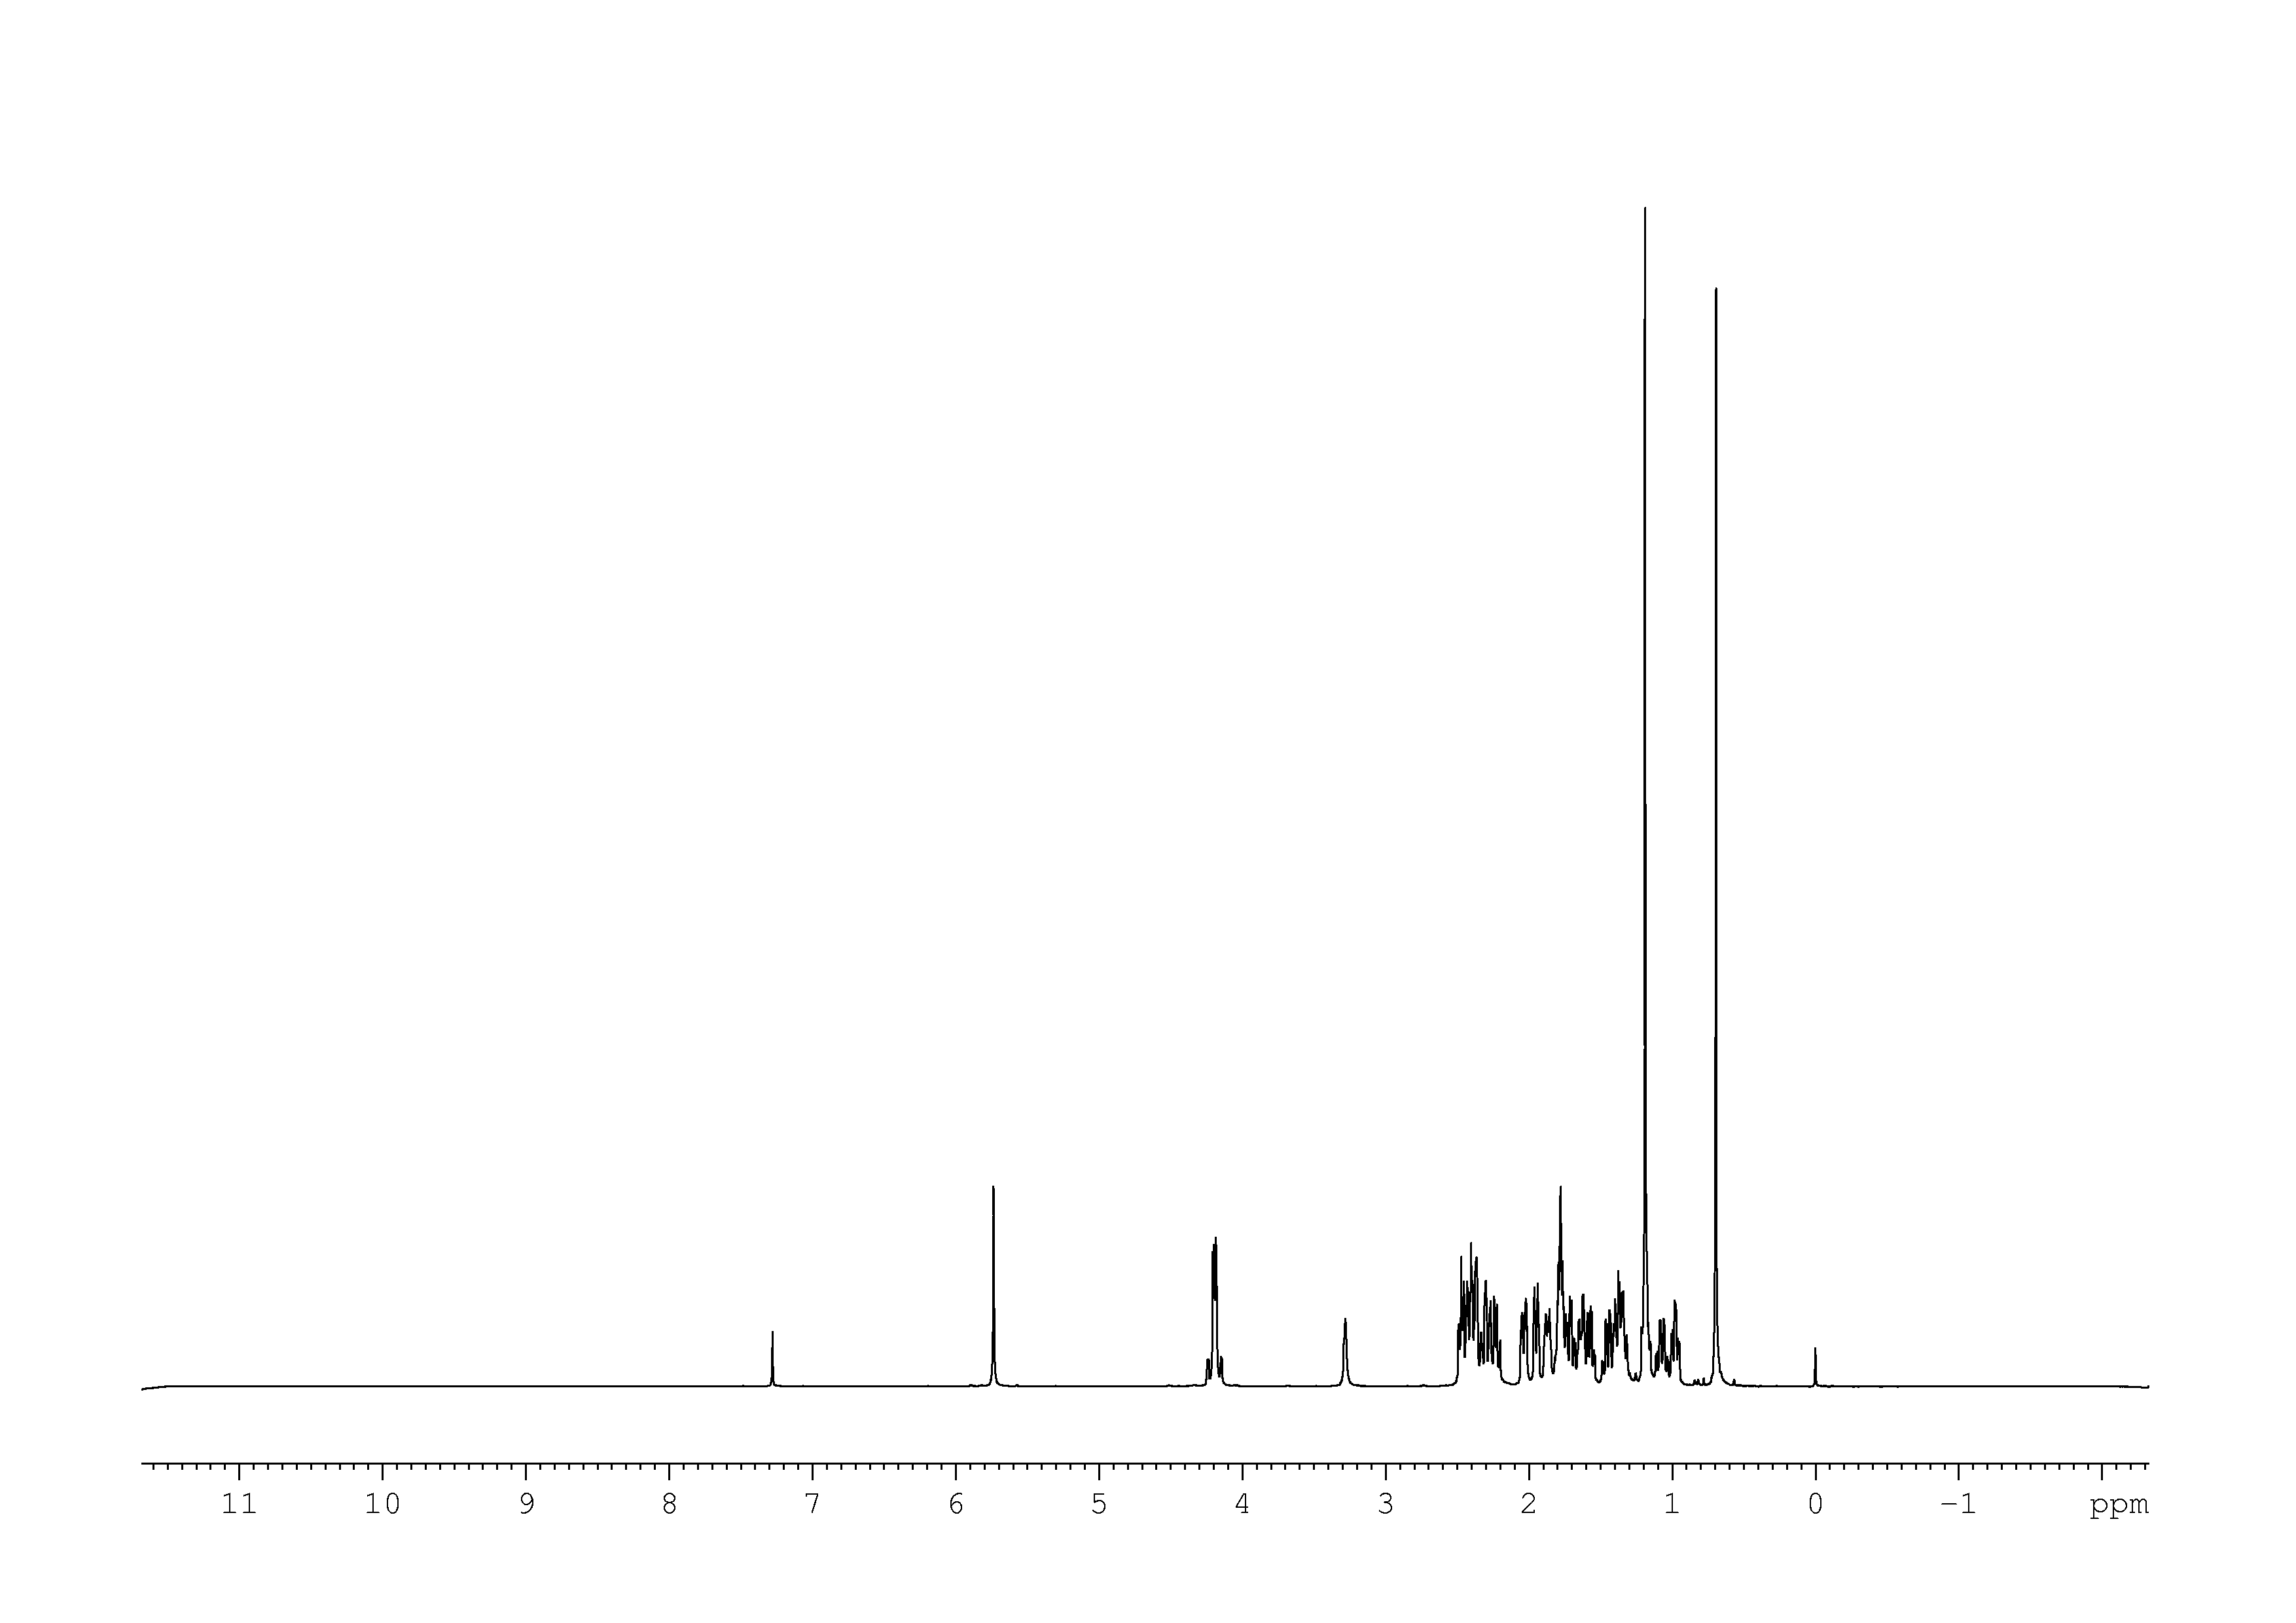 1D 1H, n/a spectrum for 21-hydroxyprogesterone